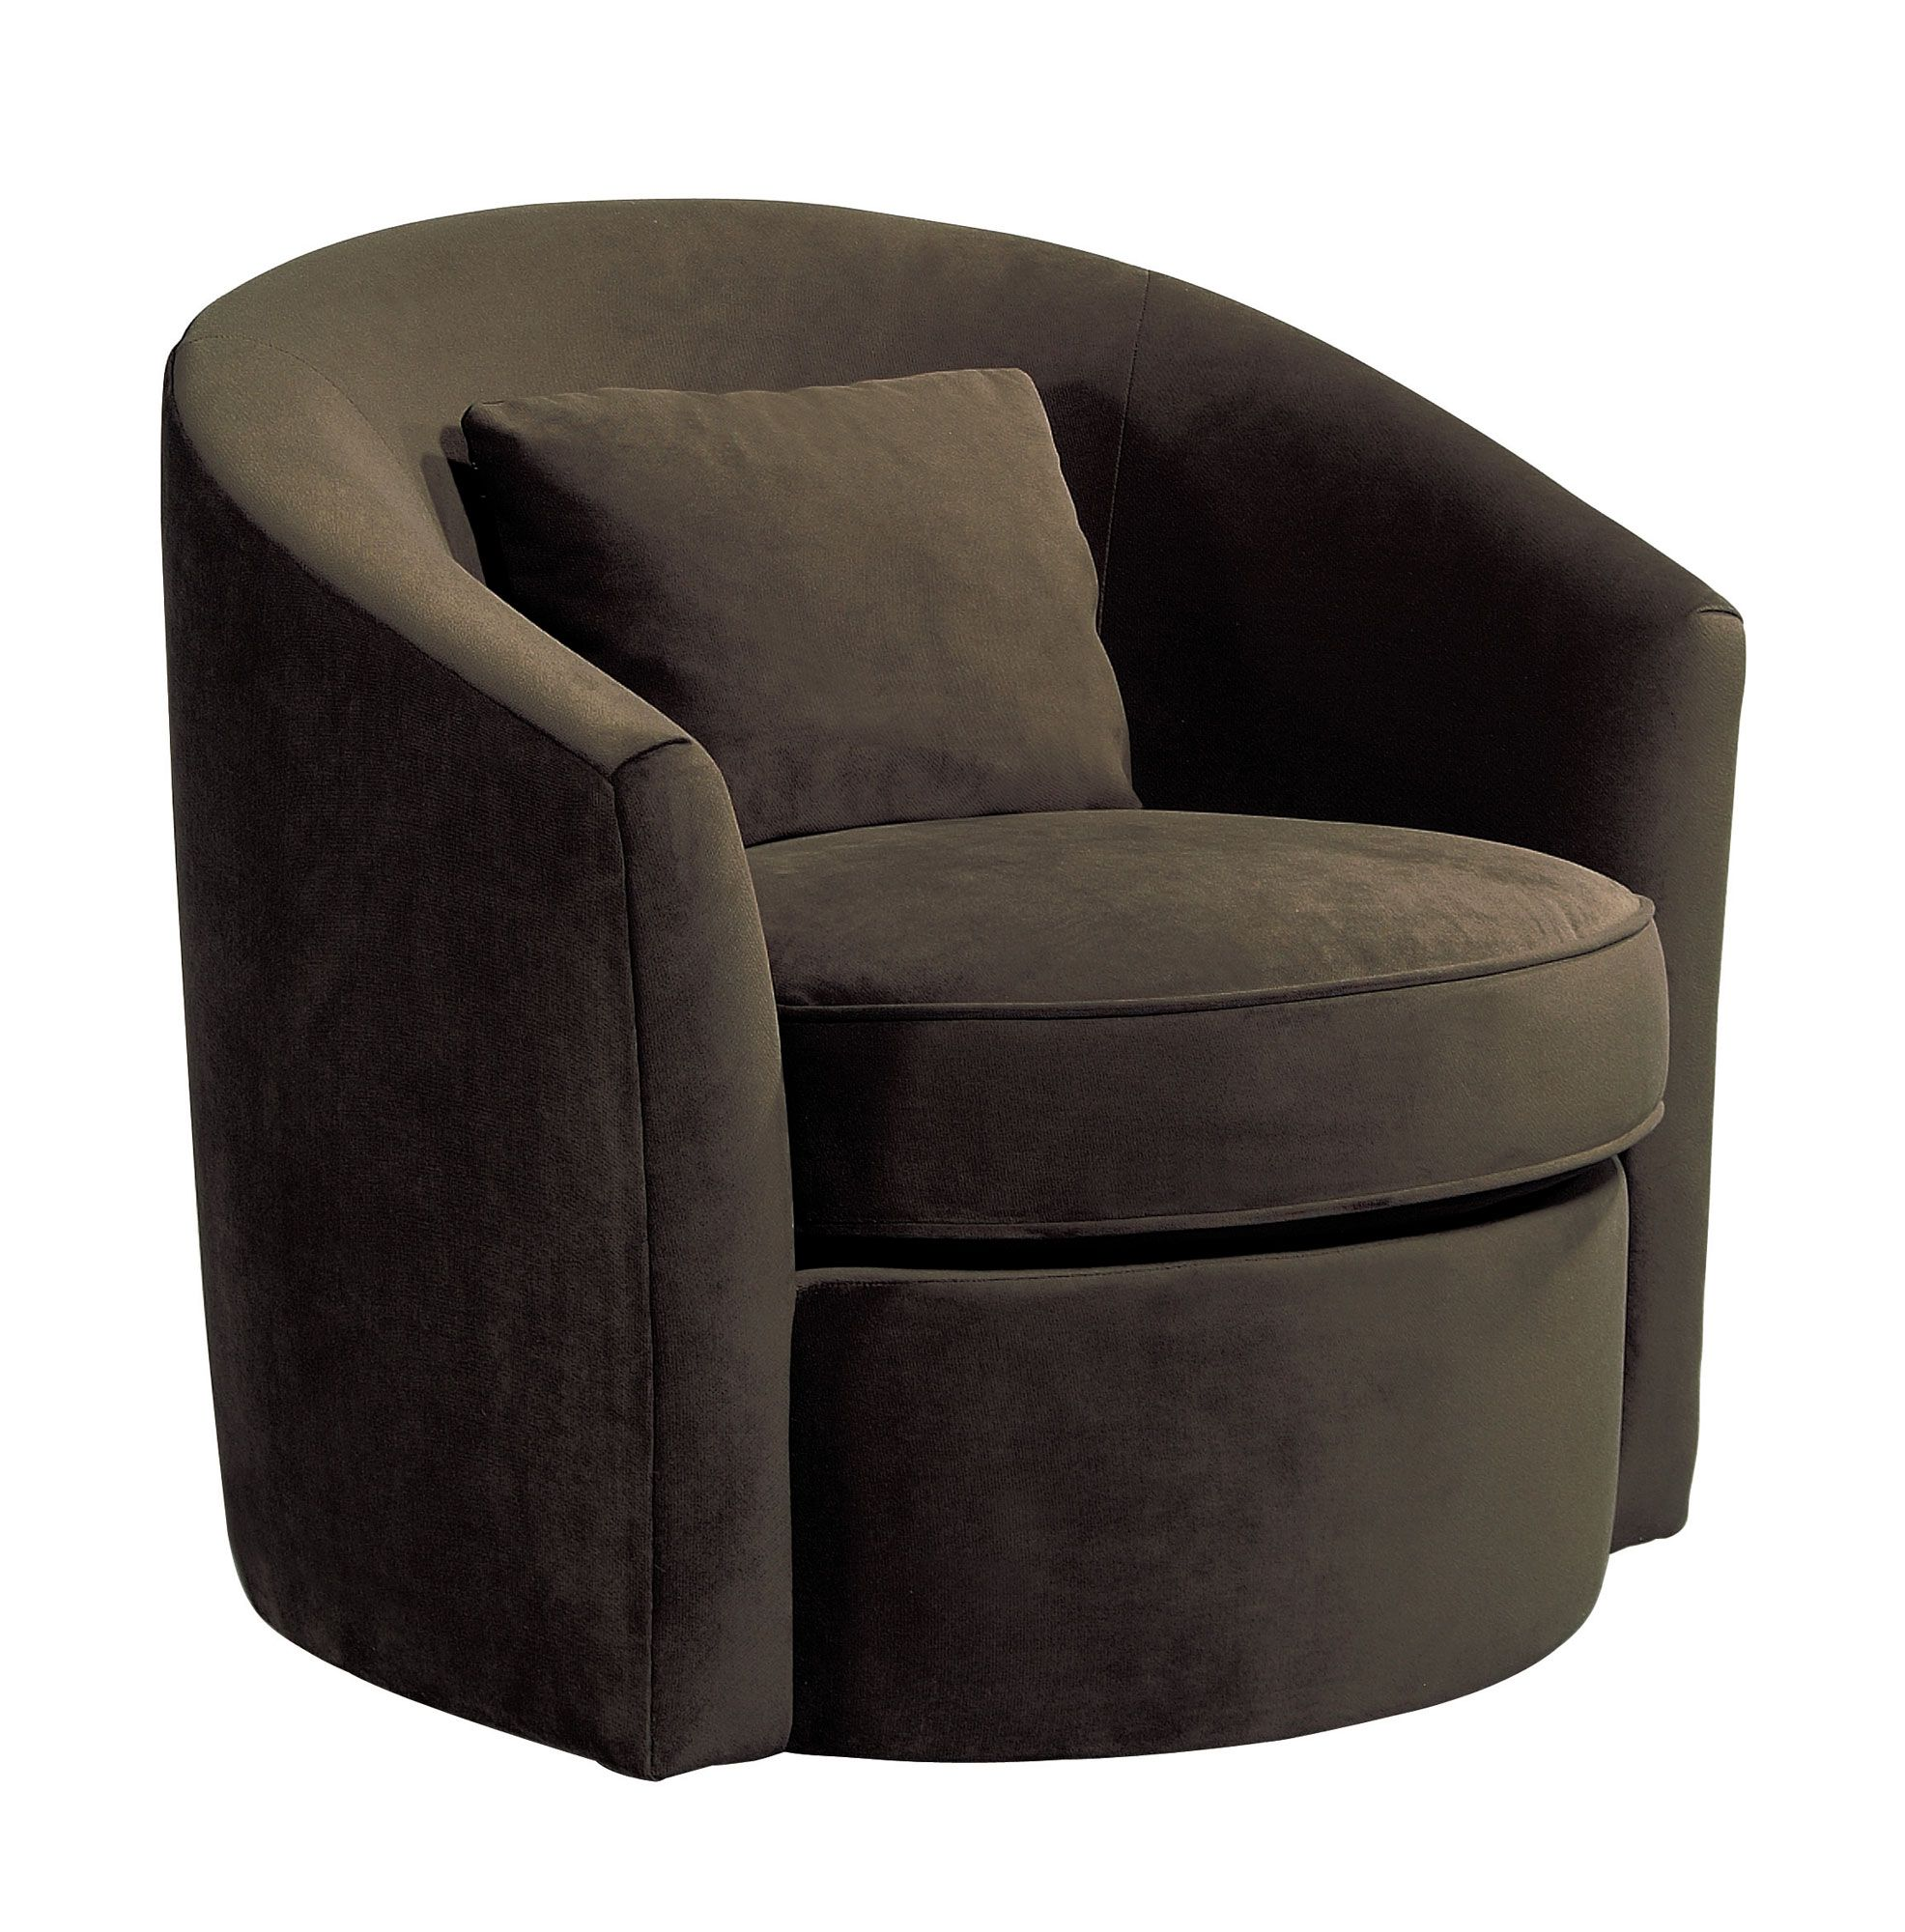 Swivel Club Chairs Living Room Swivel Chair Bernhardt Put A Fun Fabric On These For The Living